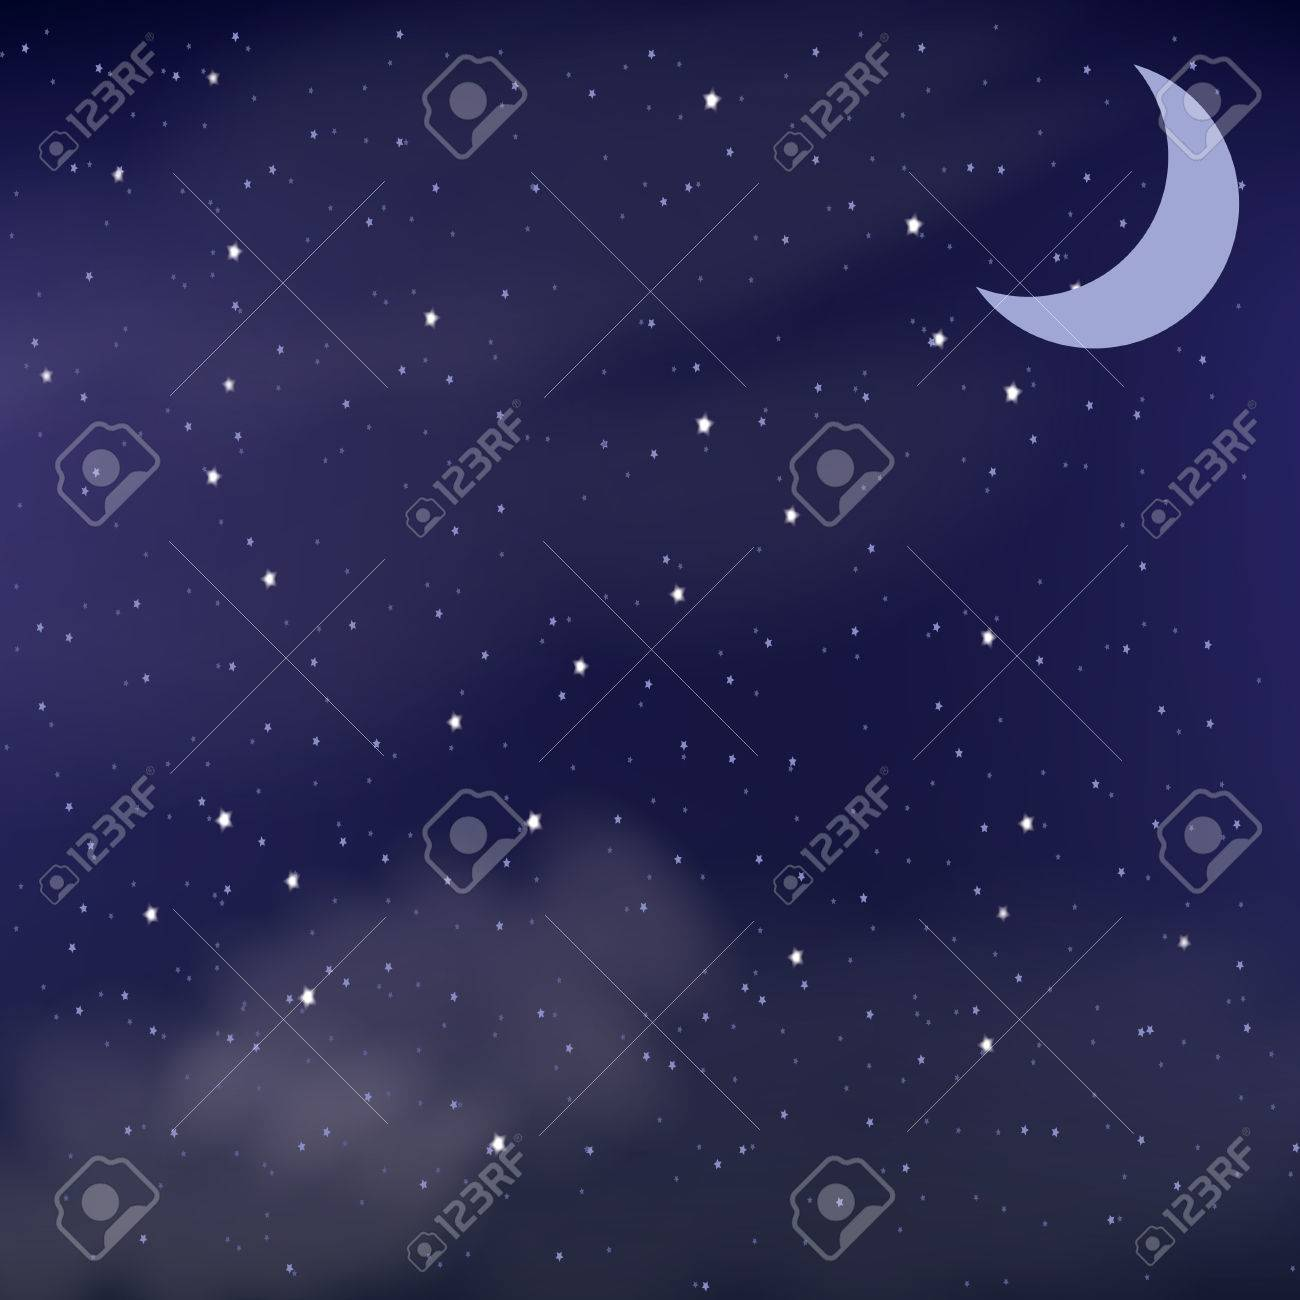 Cloudy night sky as a background - 62196774